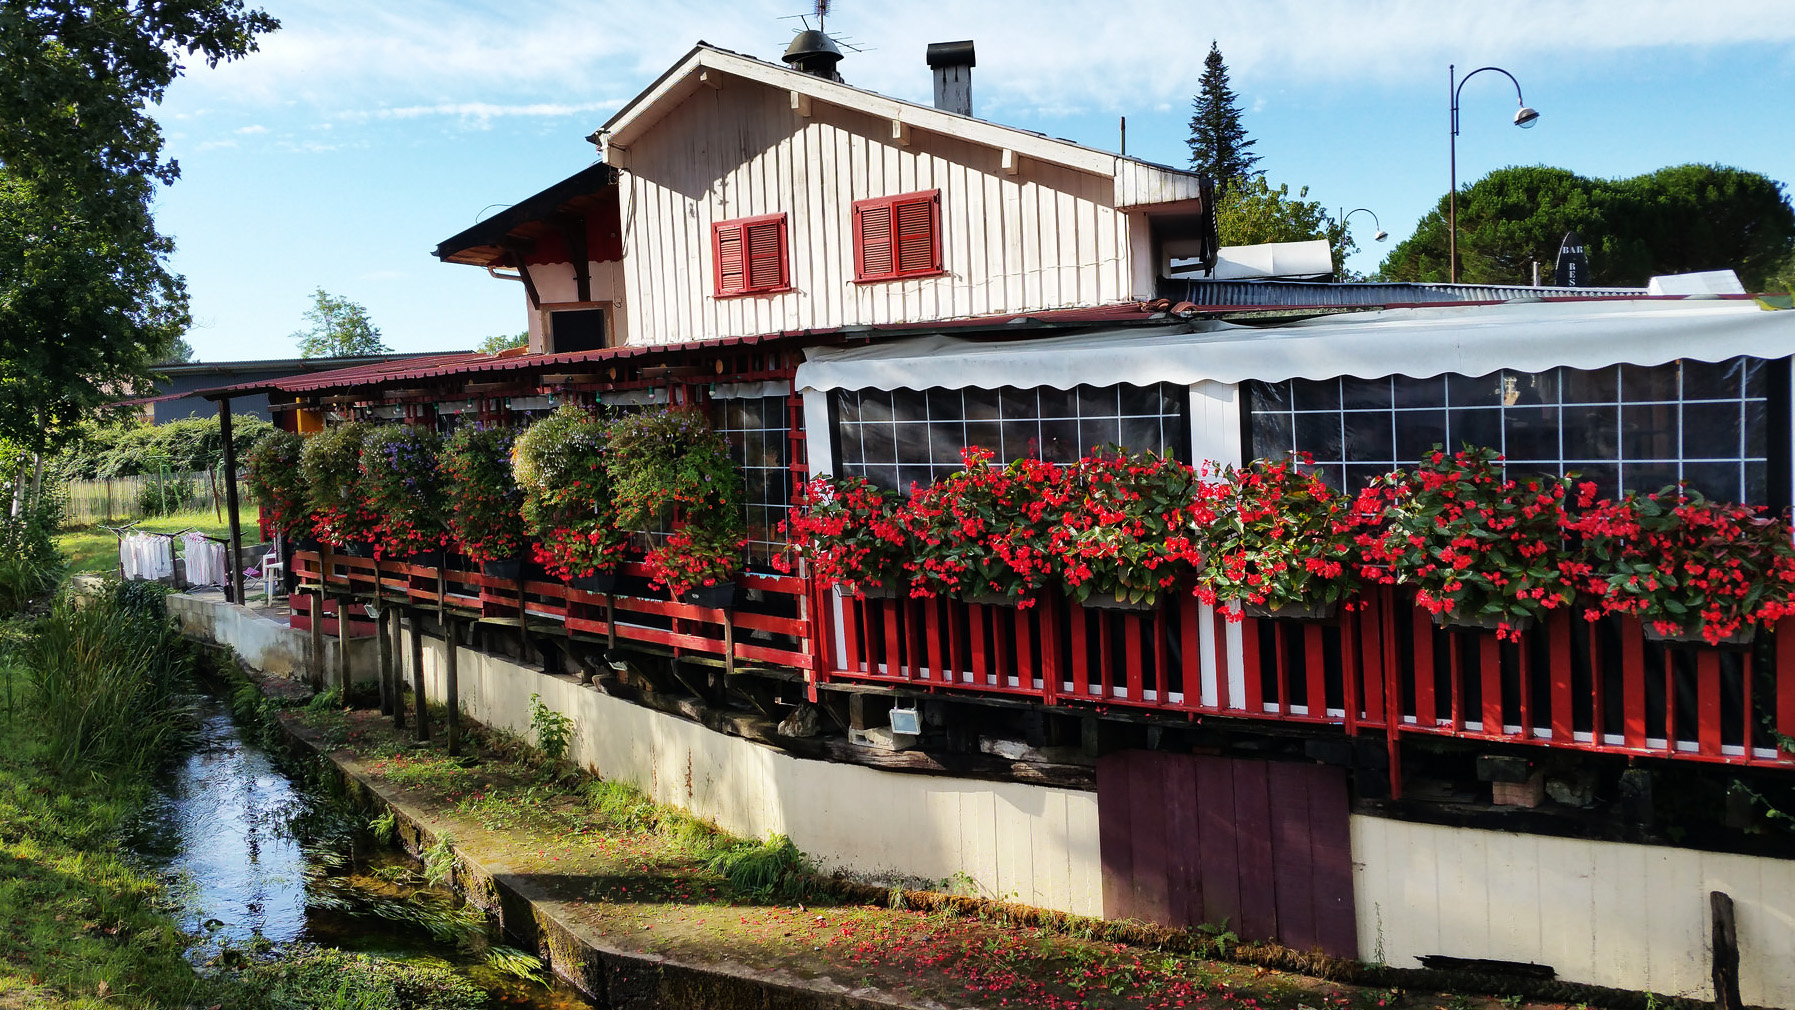 SOI55_TRAVEL_FRENCH_TOWN_FLOWERS_RED